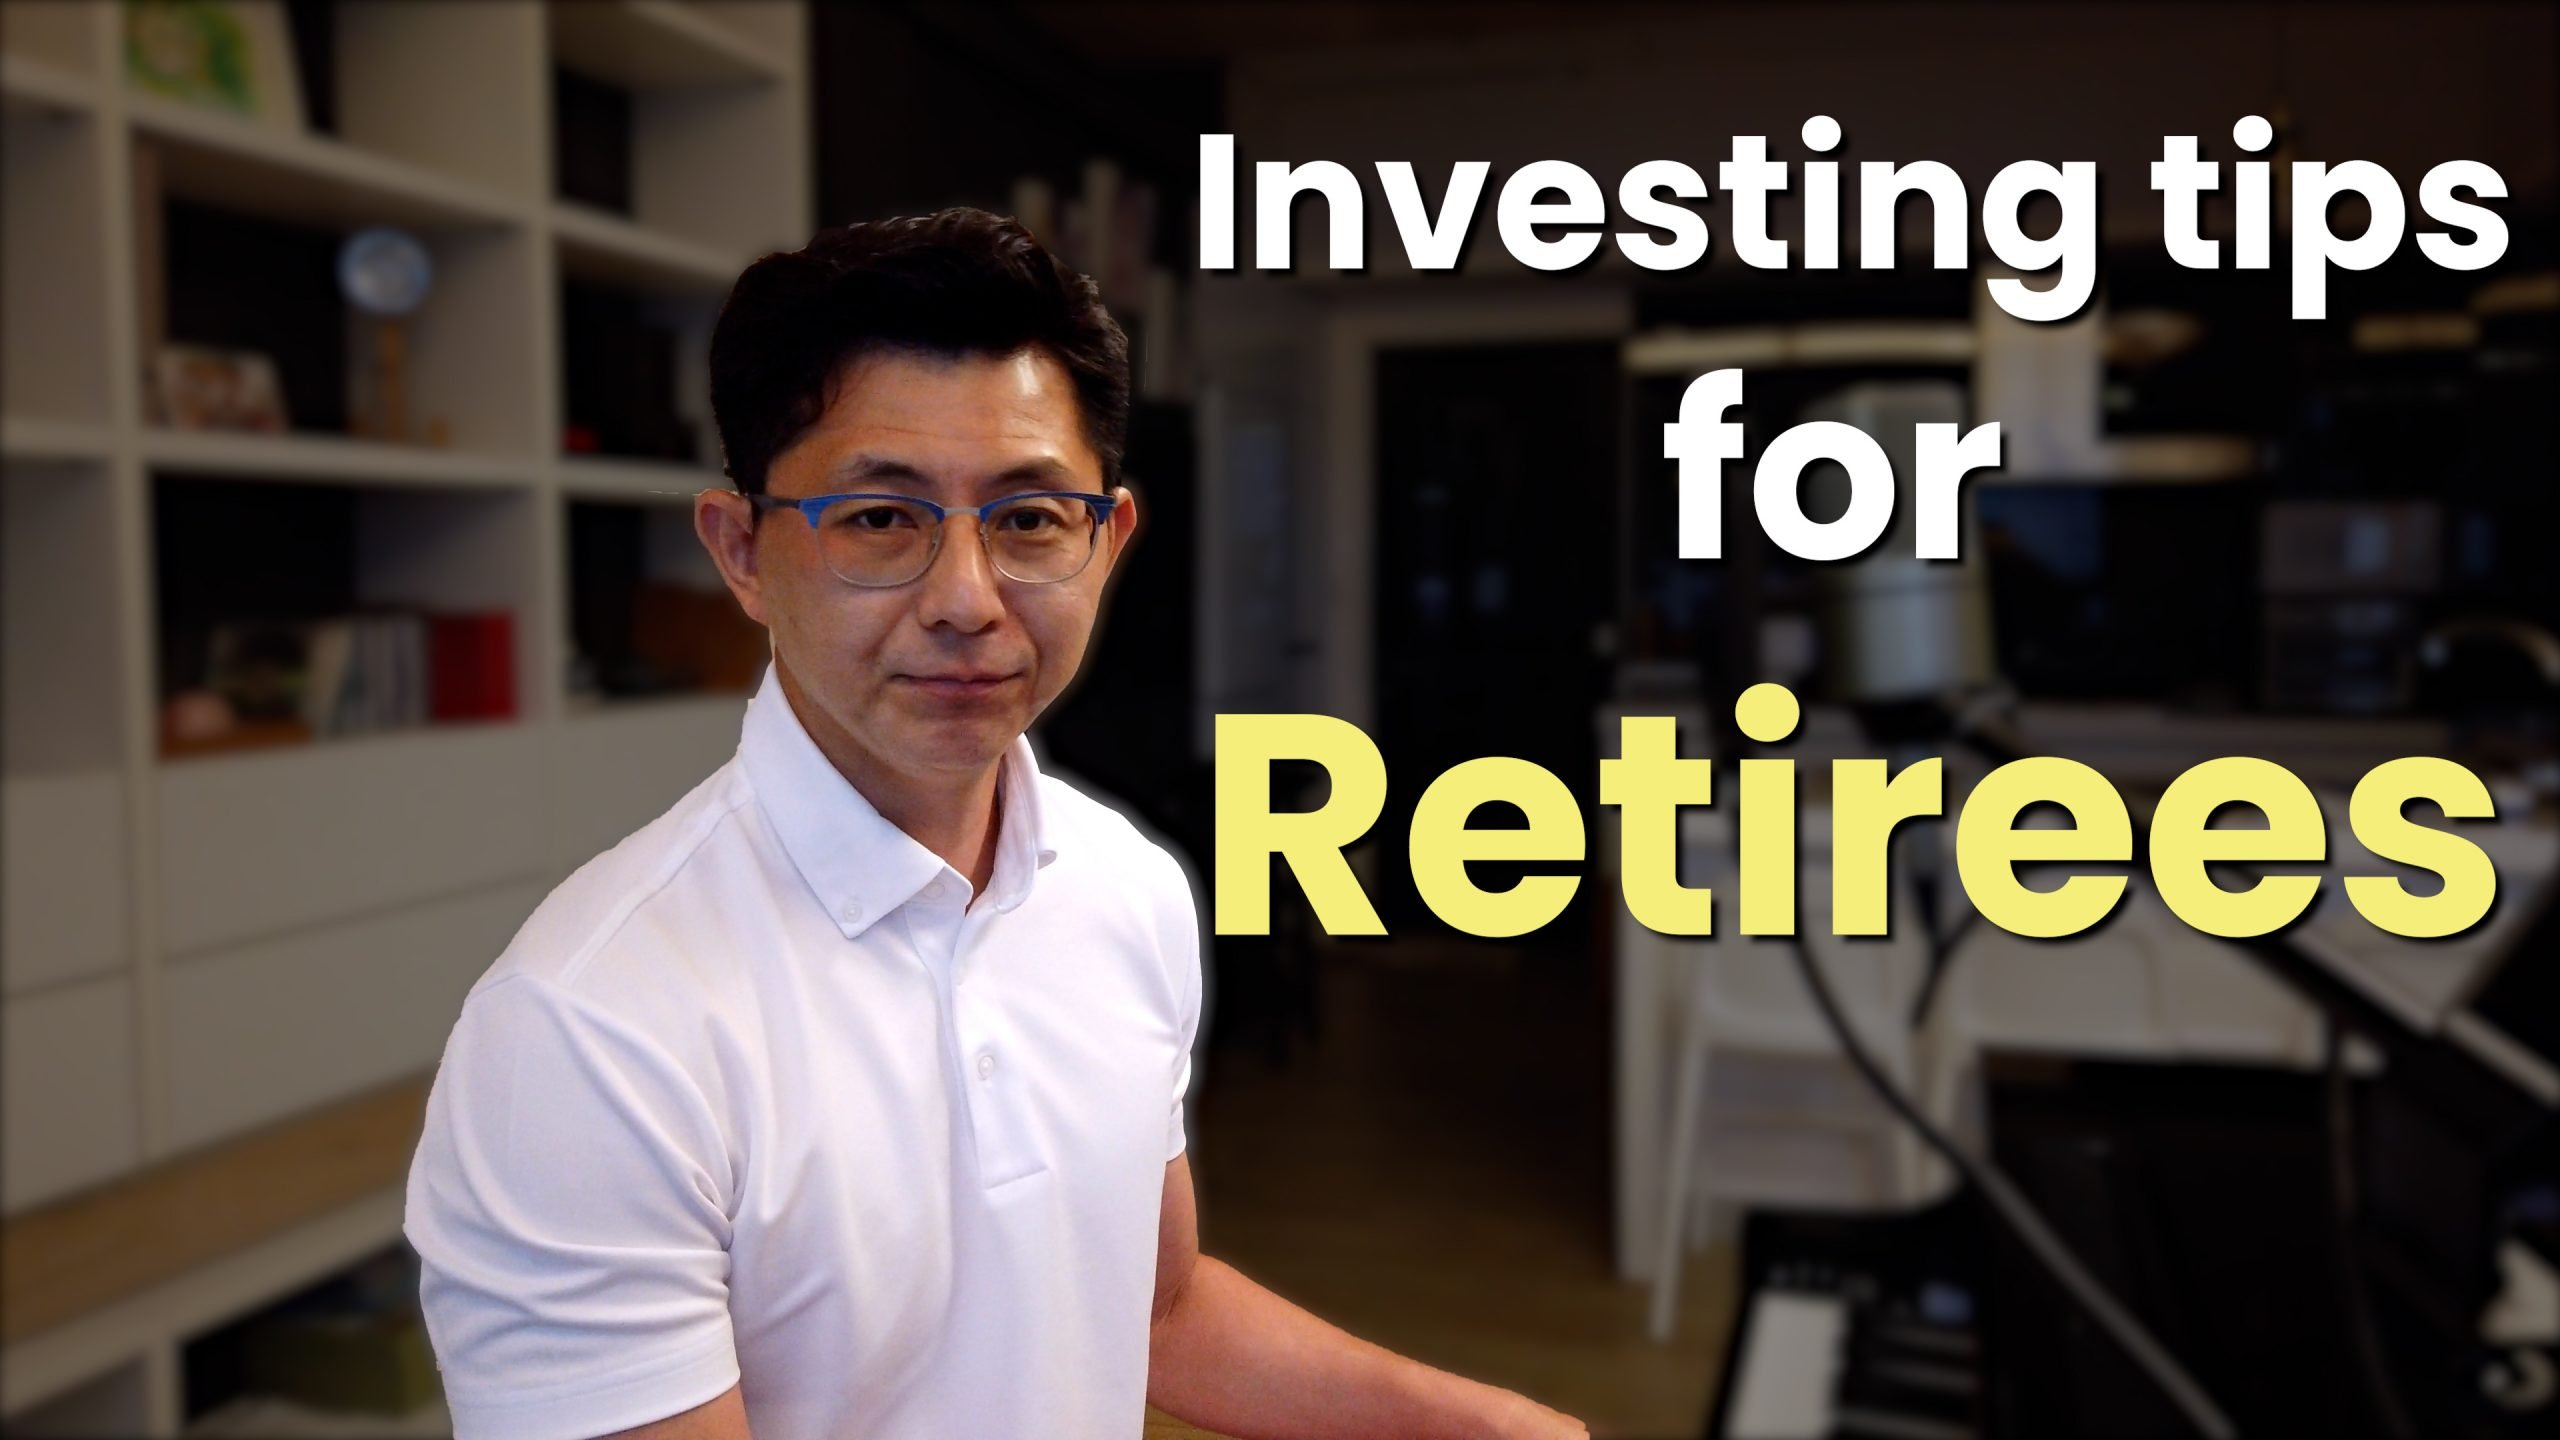 Investing for Retirees in Malaysia: Unconventional Investment Ideas